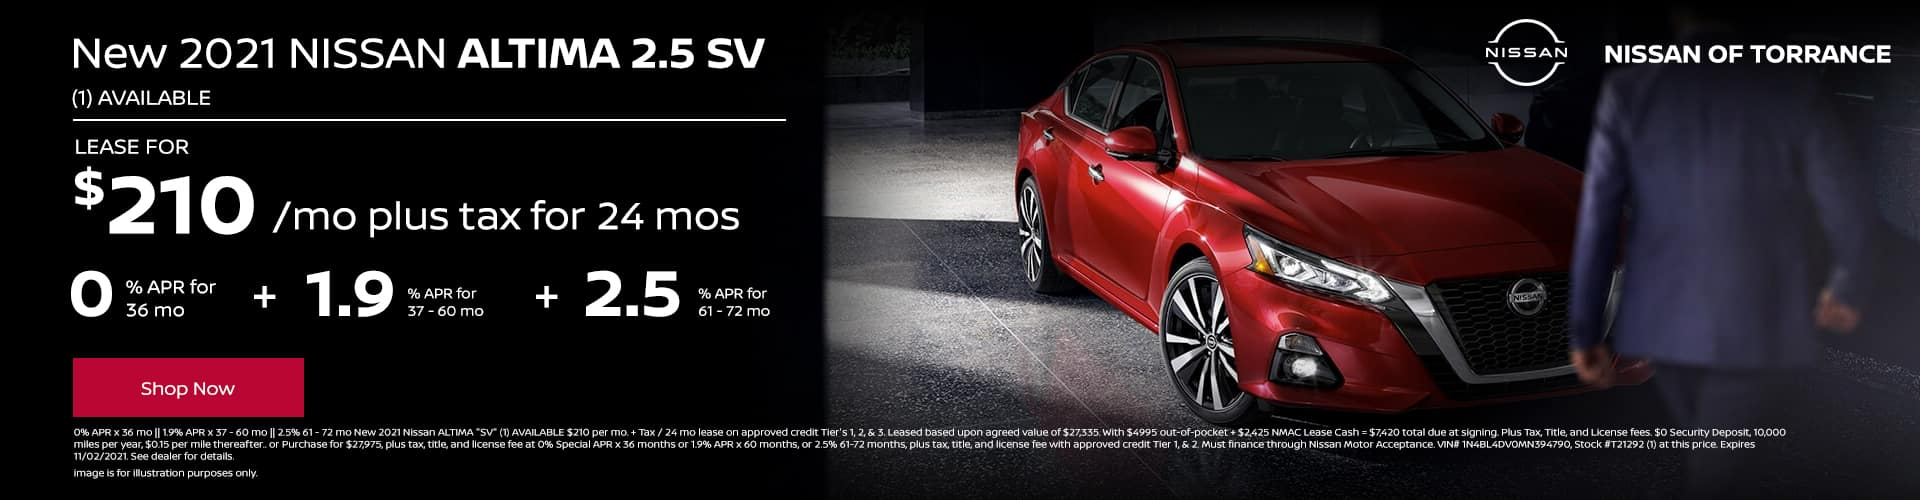 New 2021 Nissan ALTIMA 2.5 SV (1) AVAILABLE Lease for $210 per mo plus tax for 24 mo. OR 0% APR for 36 mo || 1.9% APR for 37 - 60 mo || 2.5% APR for 61 - 72 mo